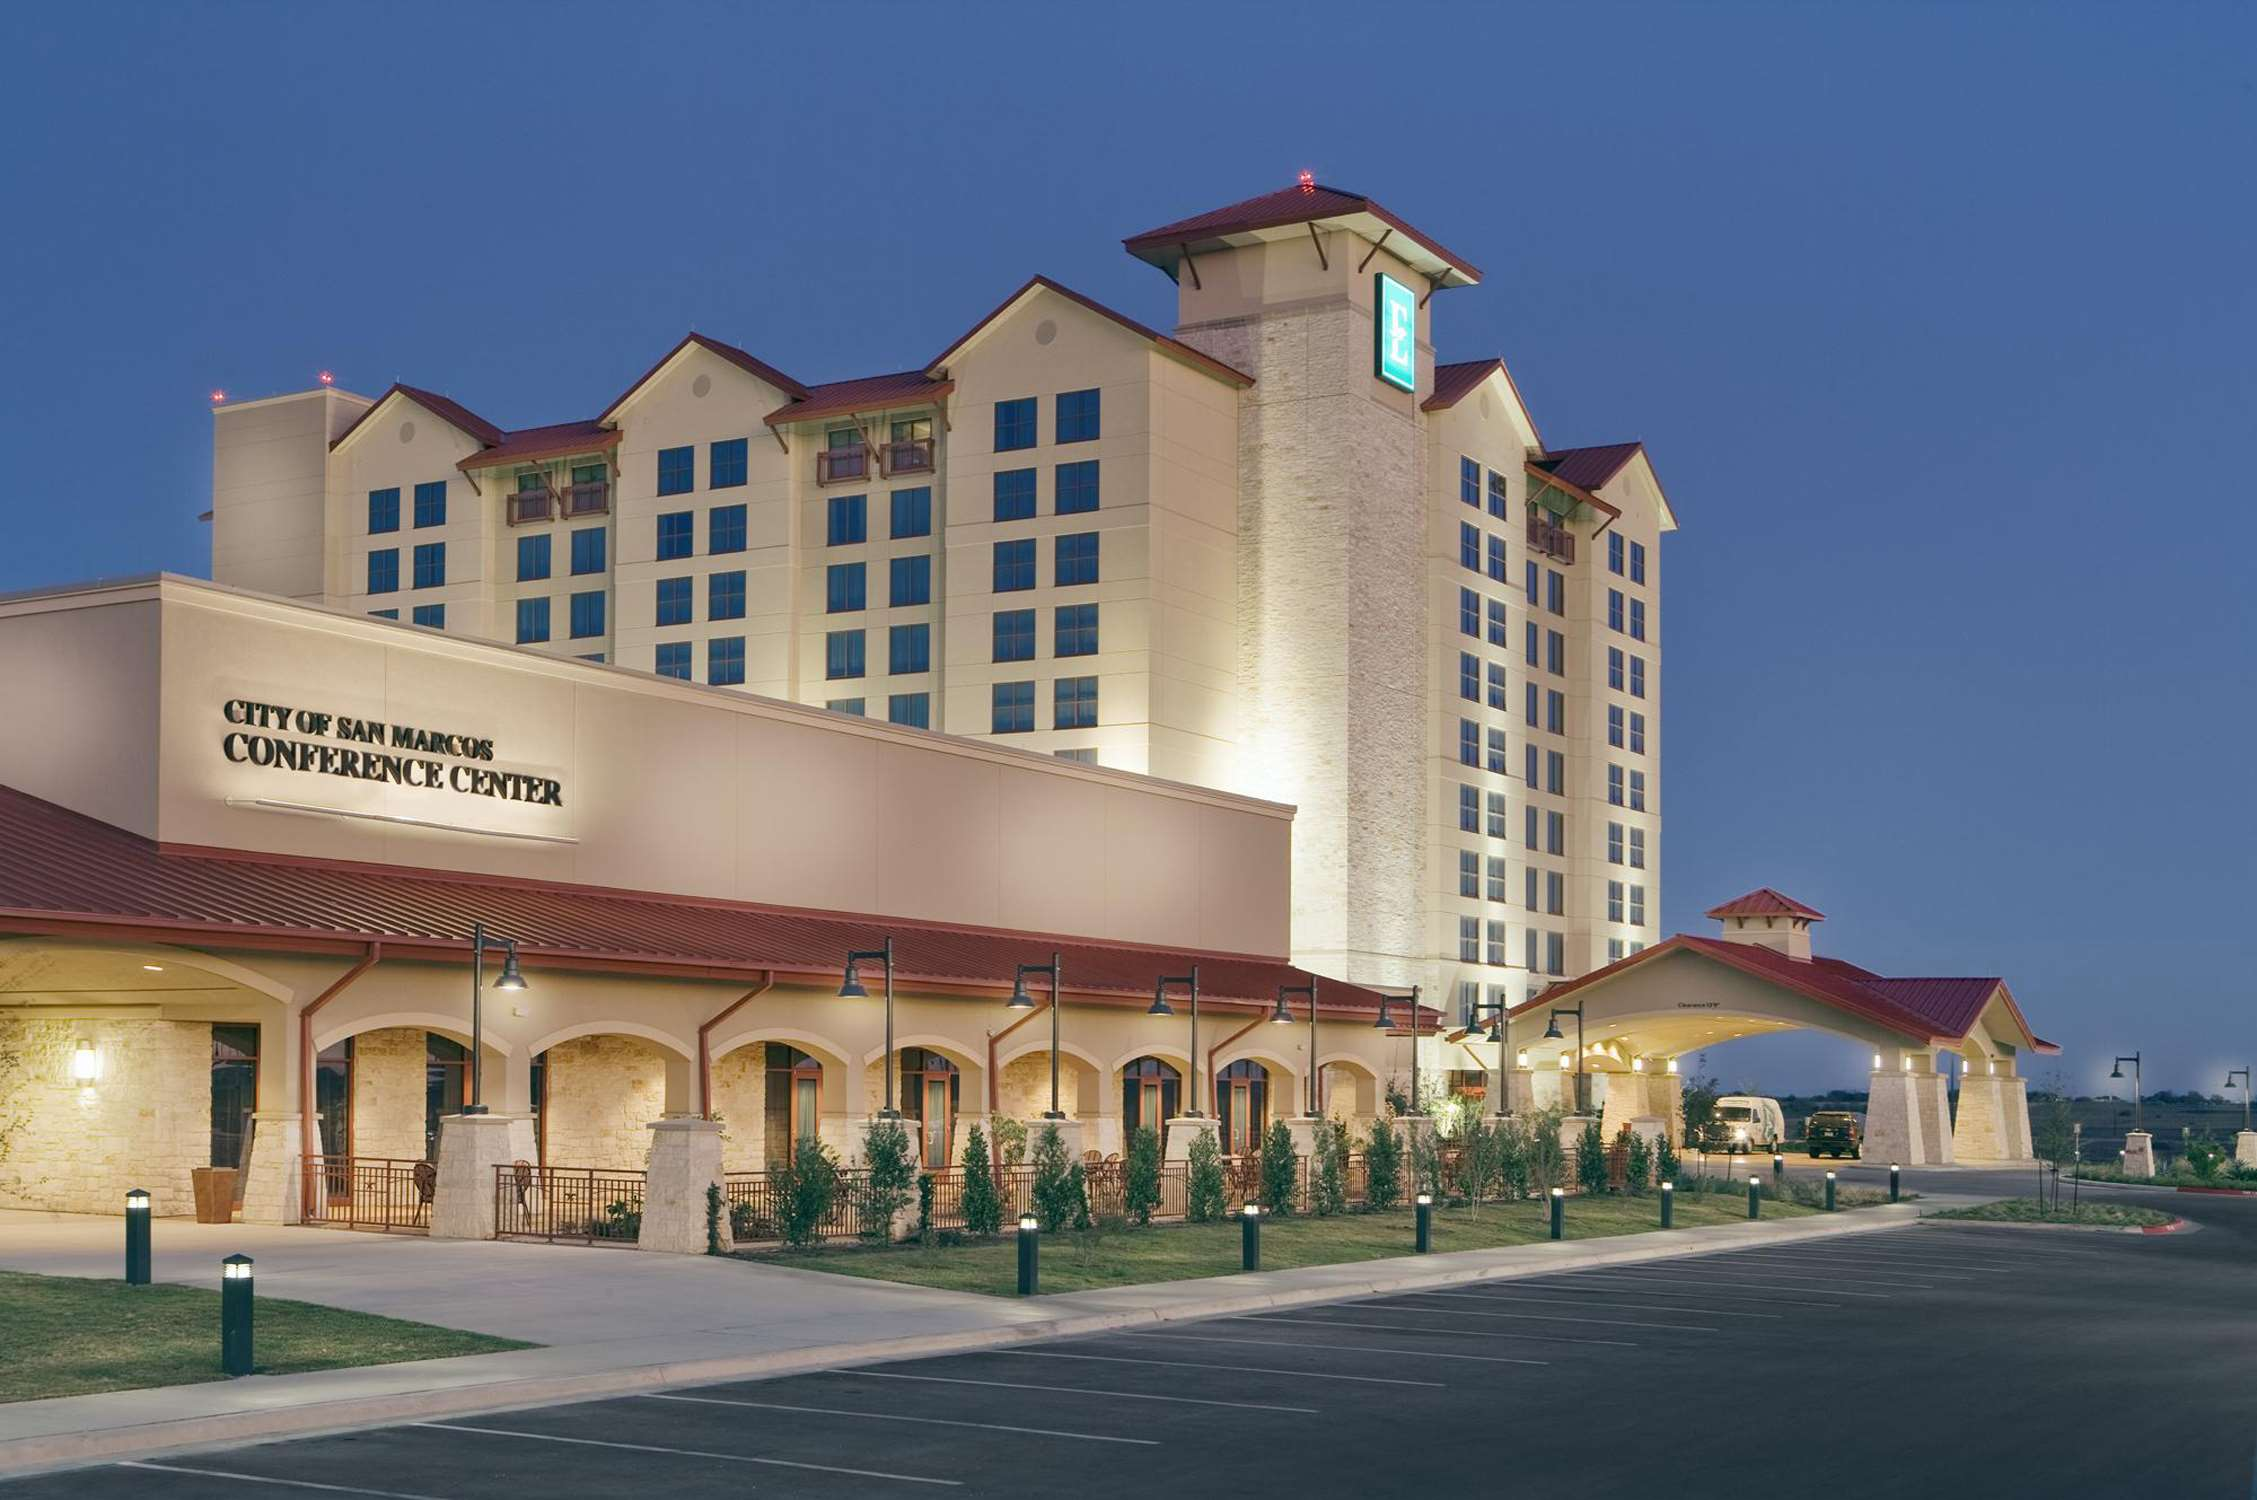 Embassy Suites by Hilton San Marcos Hotel Conference Center & Spa image 2